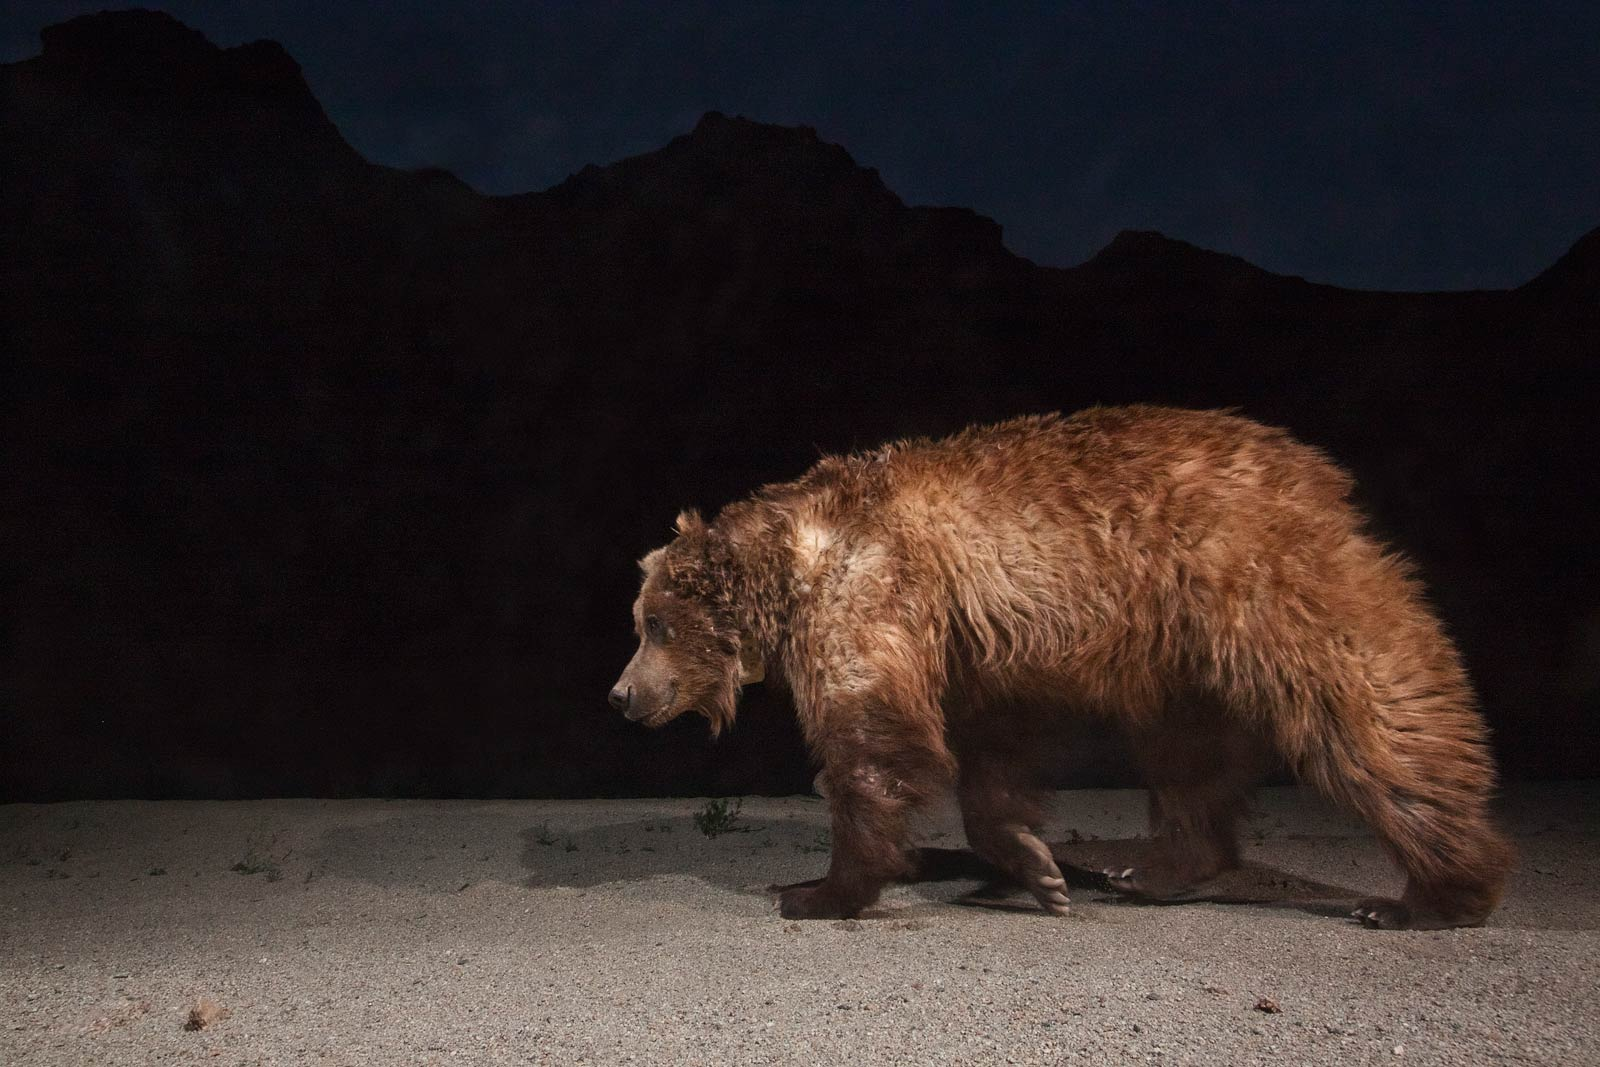 This large male was documented visiting all three oases in the Gobi A preserve, evidence that the bears are still breeding across their range.   Douglas Chadwick   has traveled to some of the world's most remote corners to report stories for  National Geographic.  Both he and photographer   Joe Riis   are trained wildlife biologists.